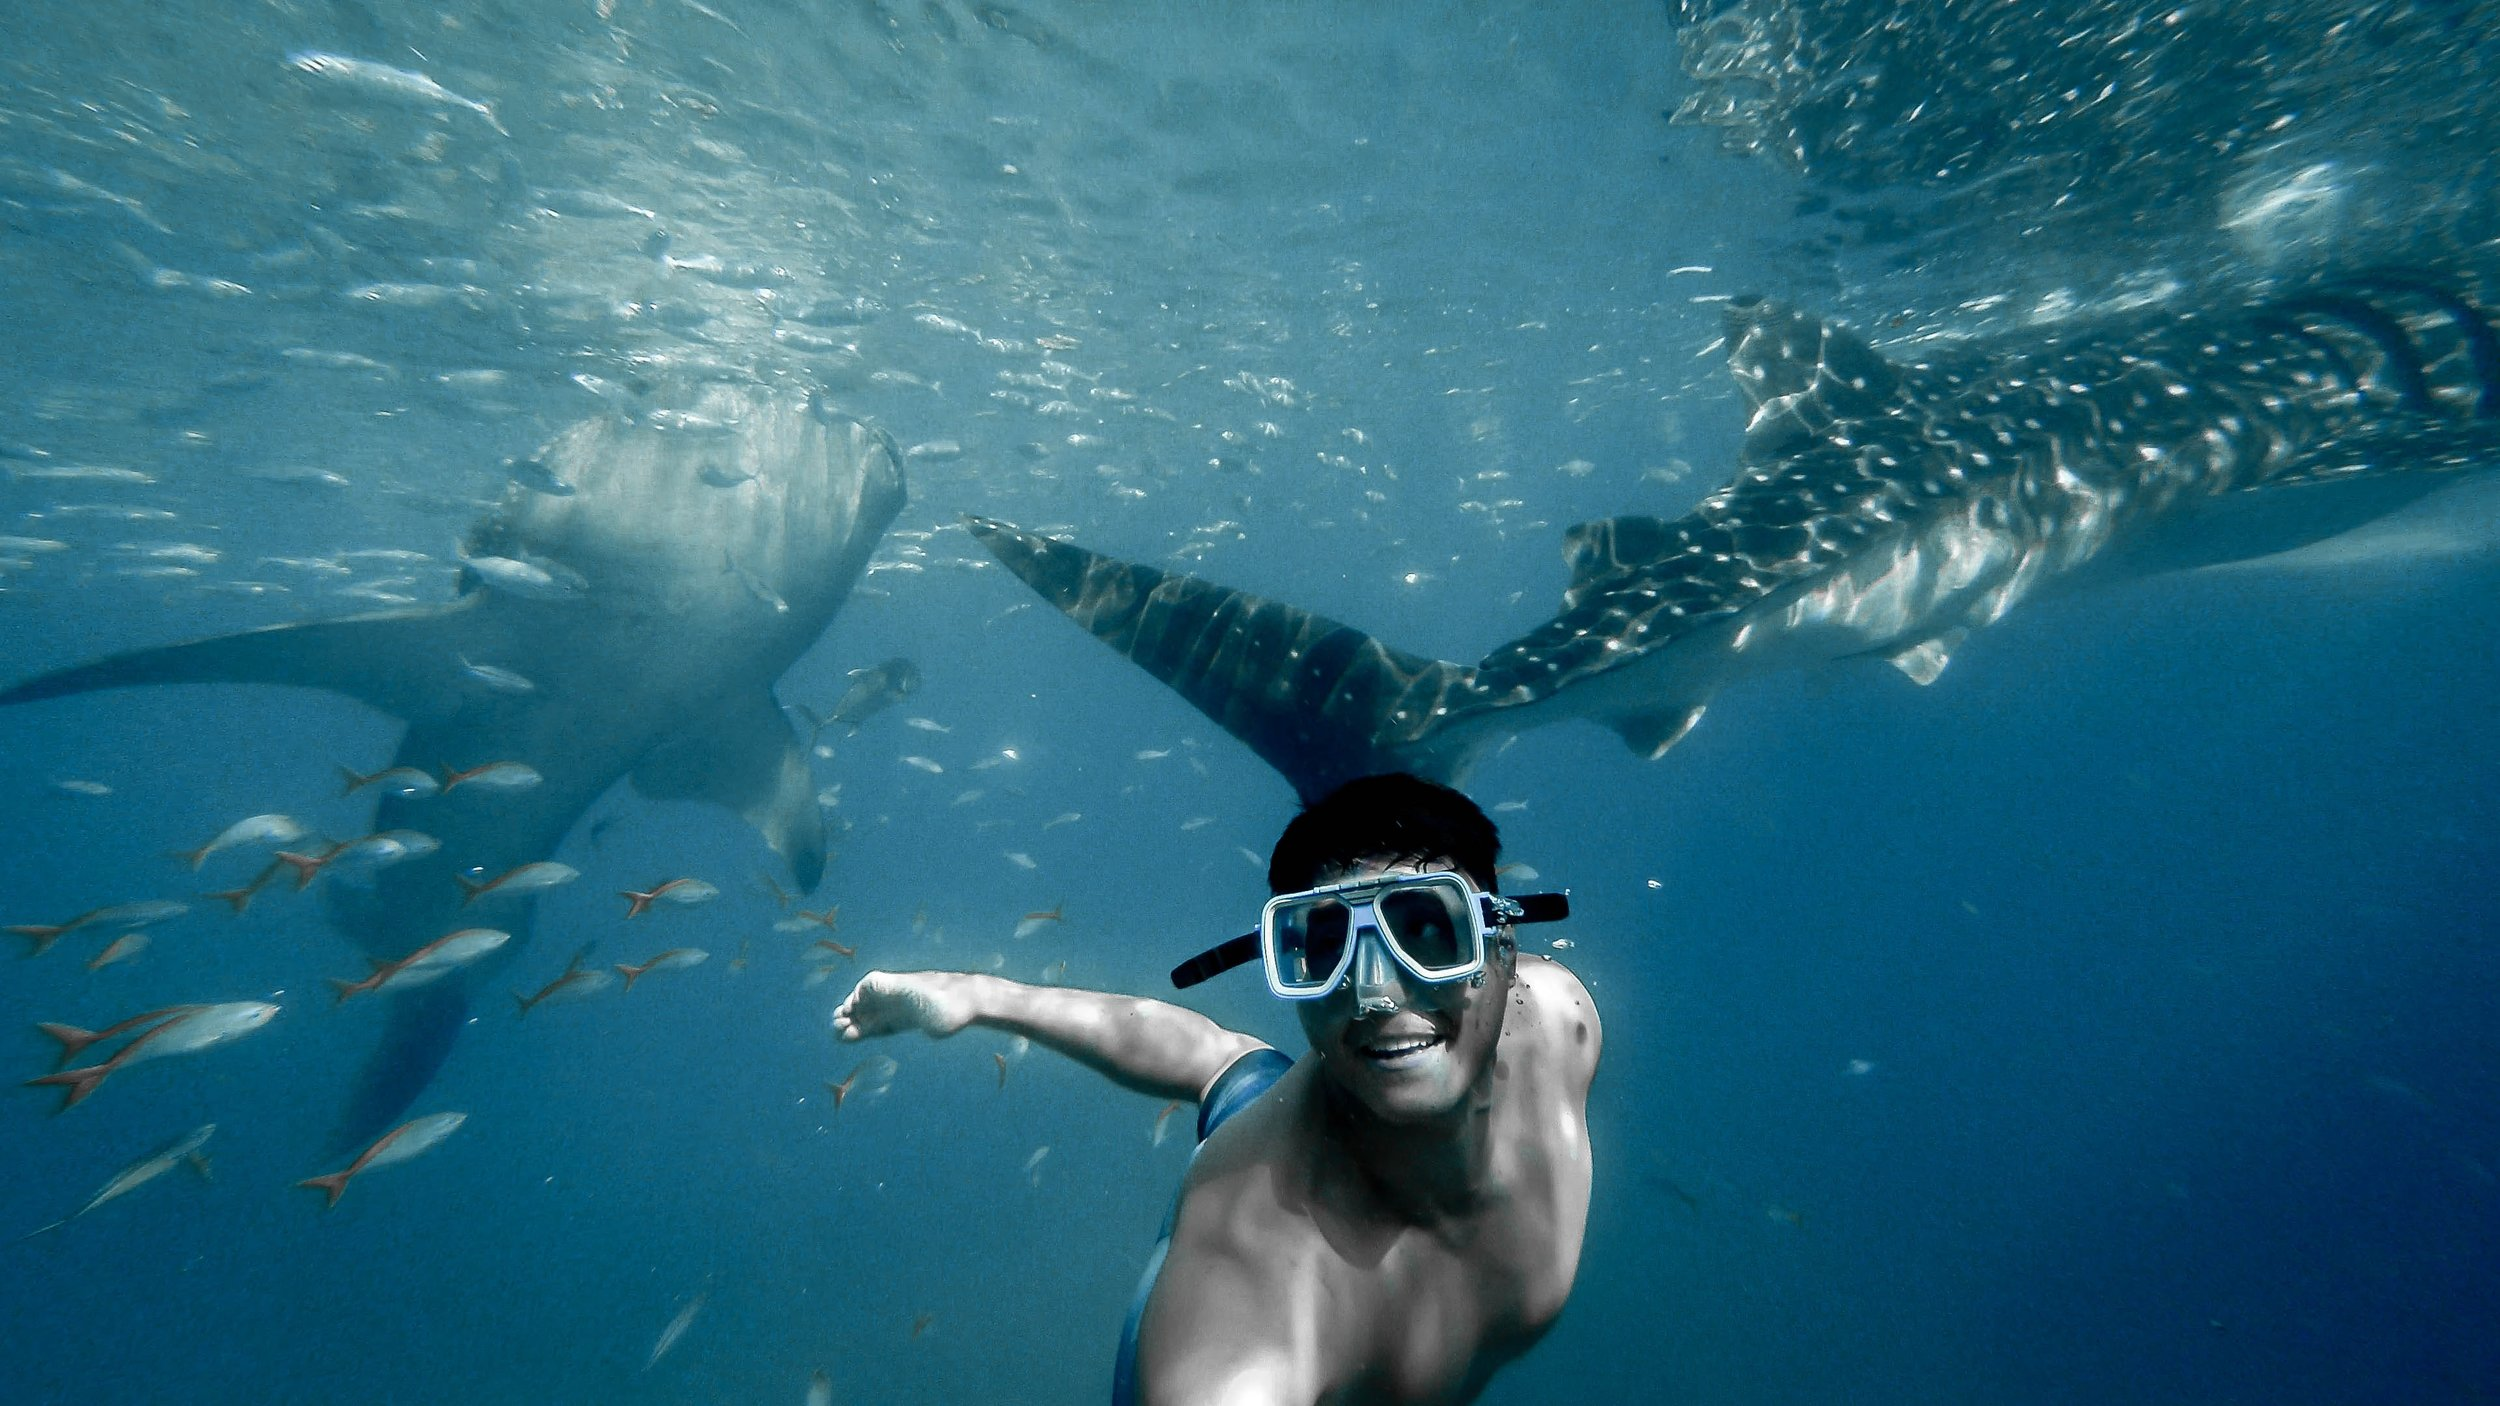 Shark Snorkel Tour in La Jolla - 2-Hour guided tour with gear included.